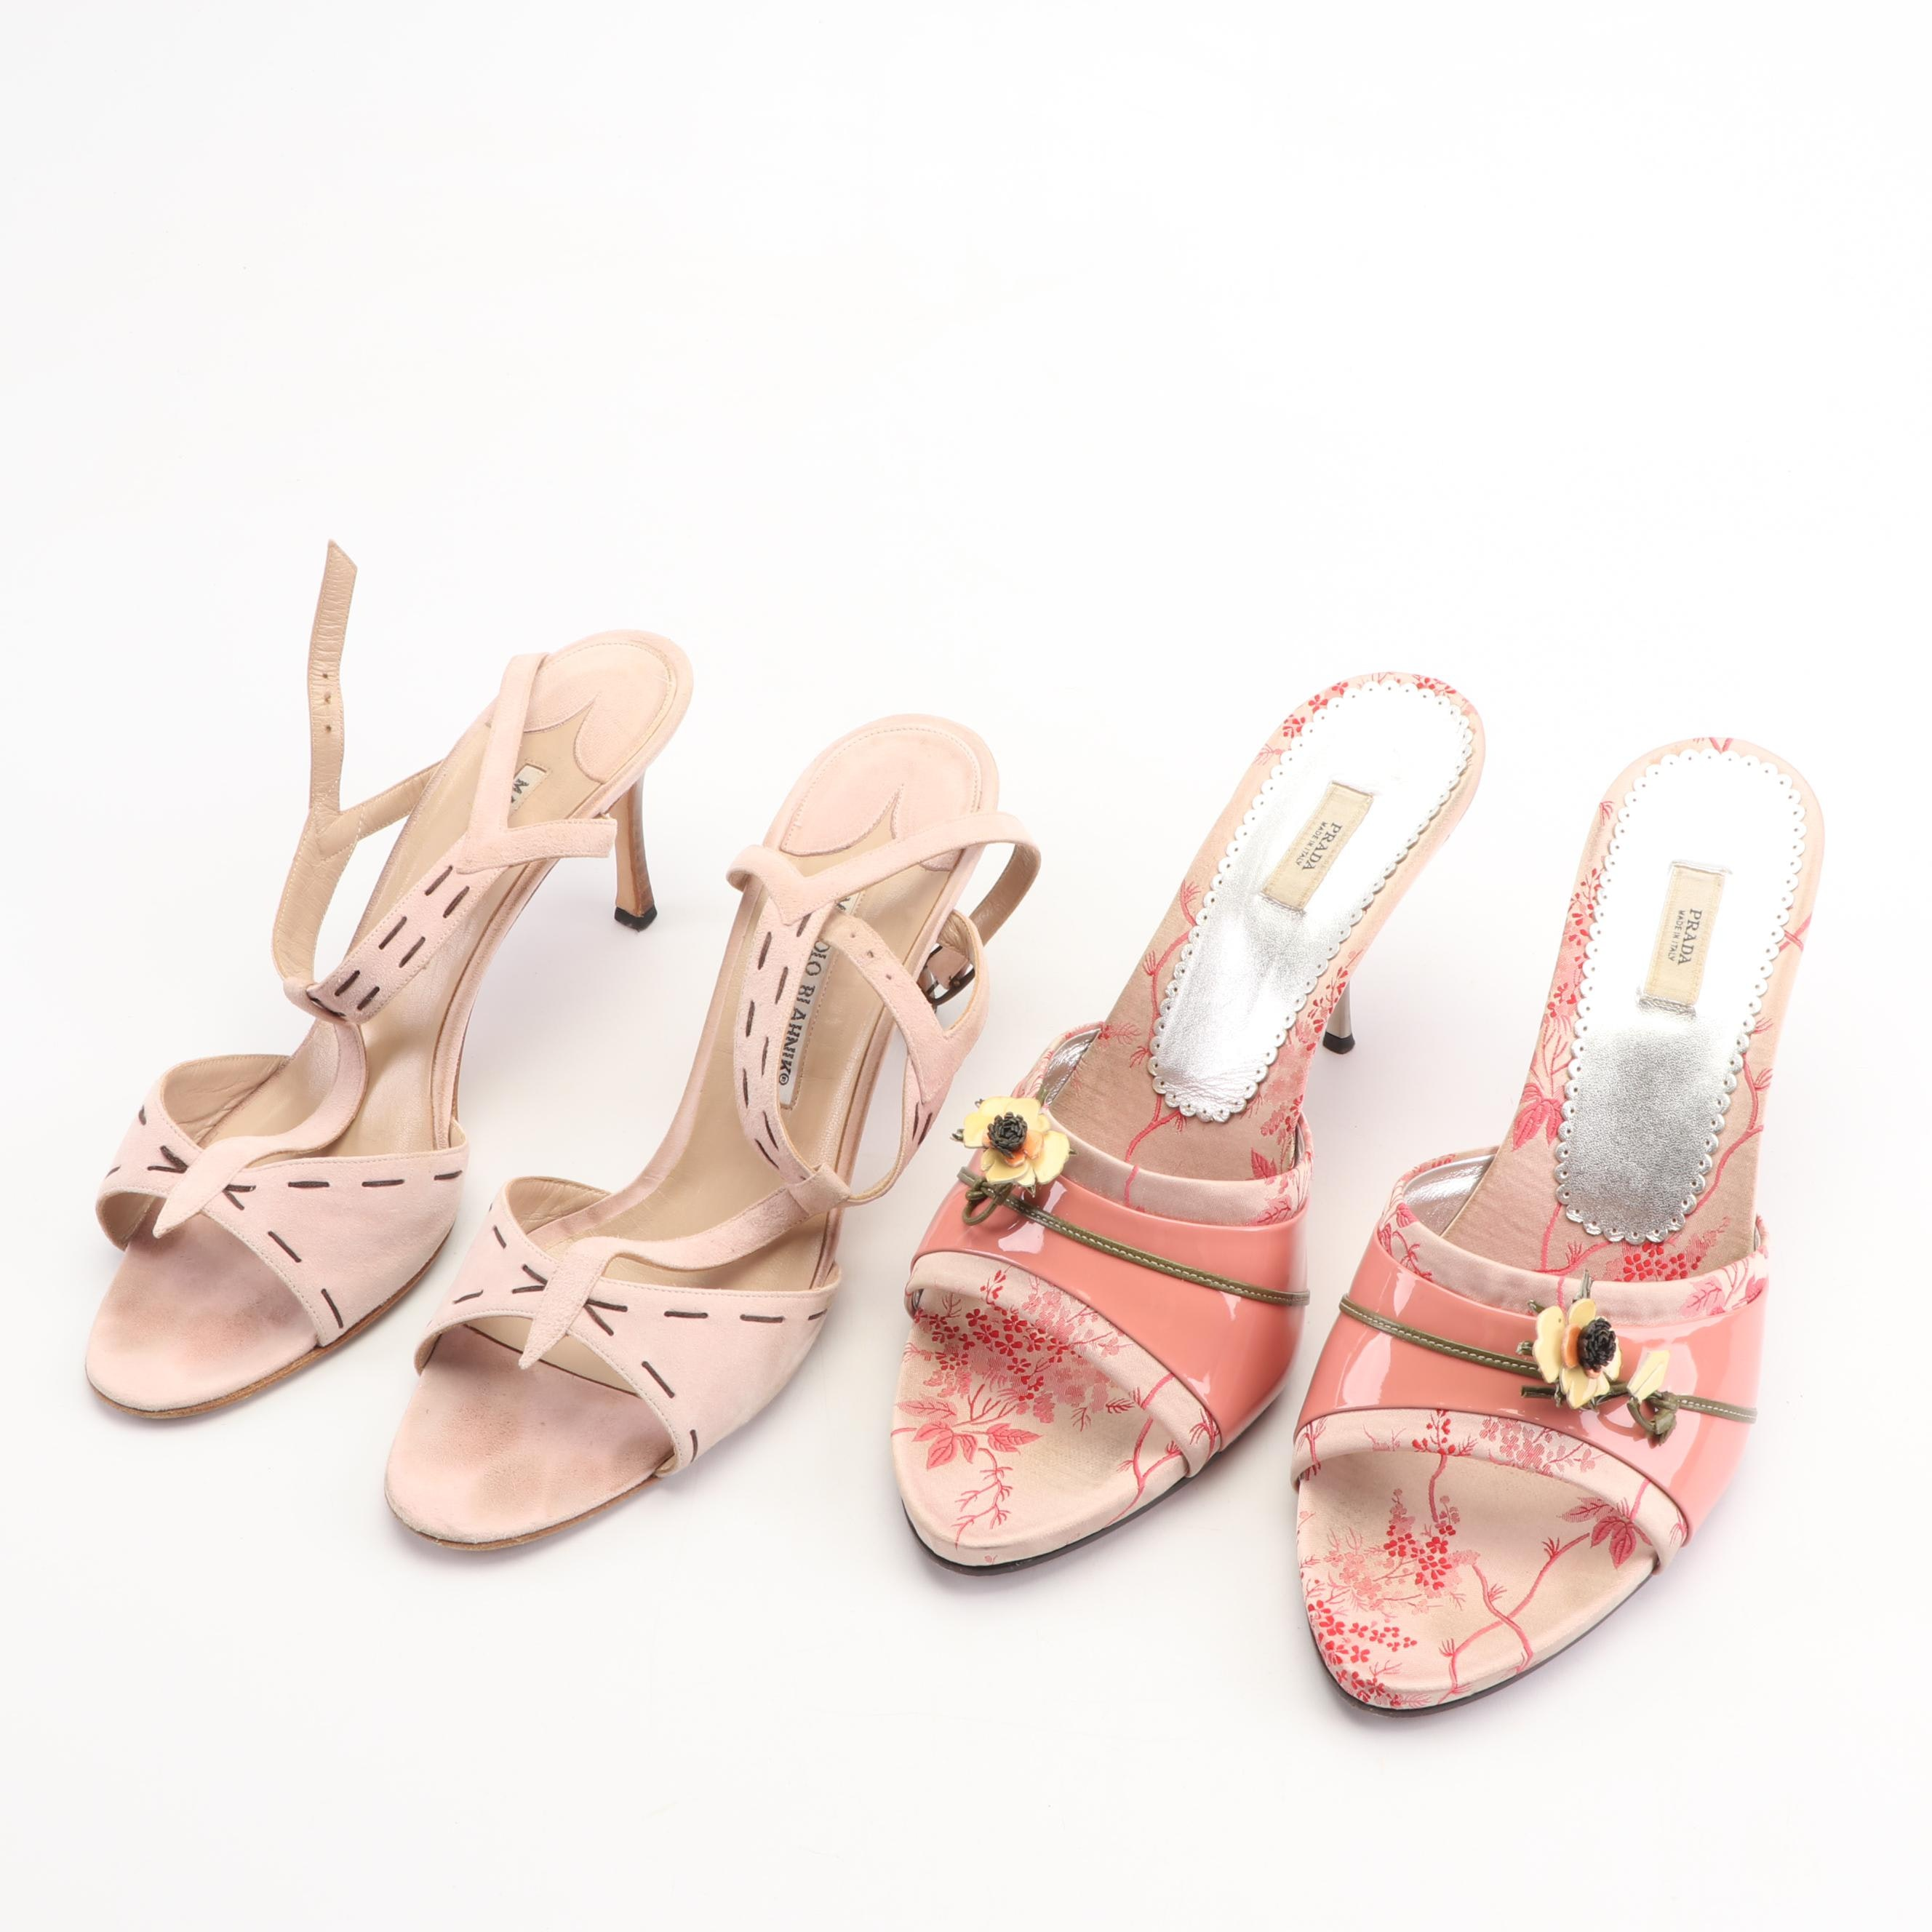 Prada and Manolo Blahnik Pink Stiletto Sandals